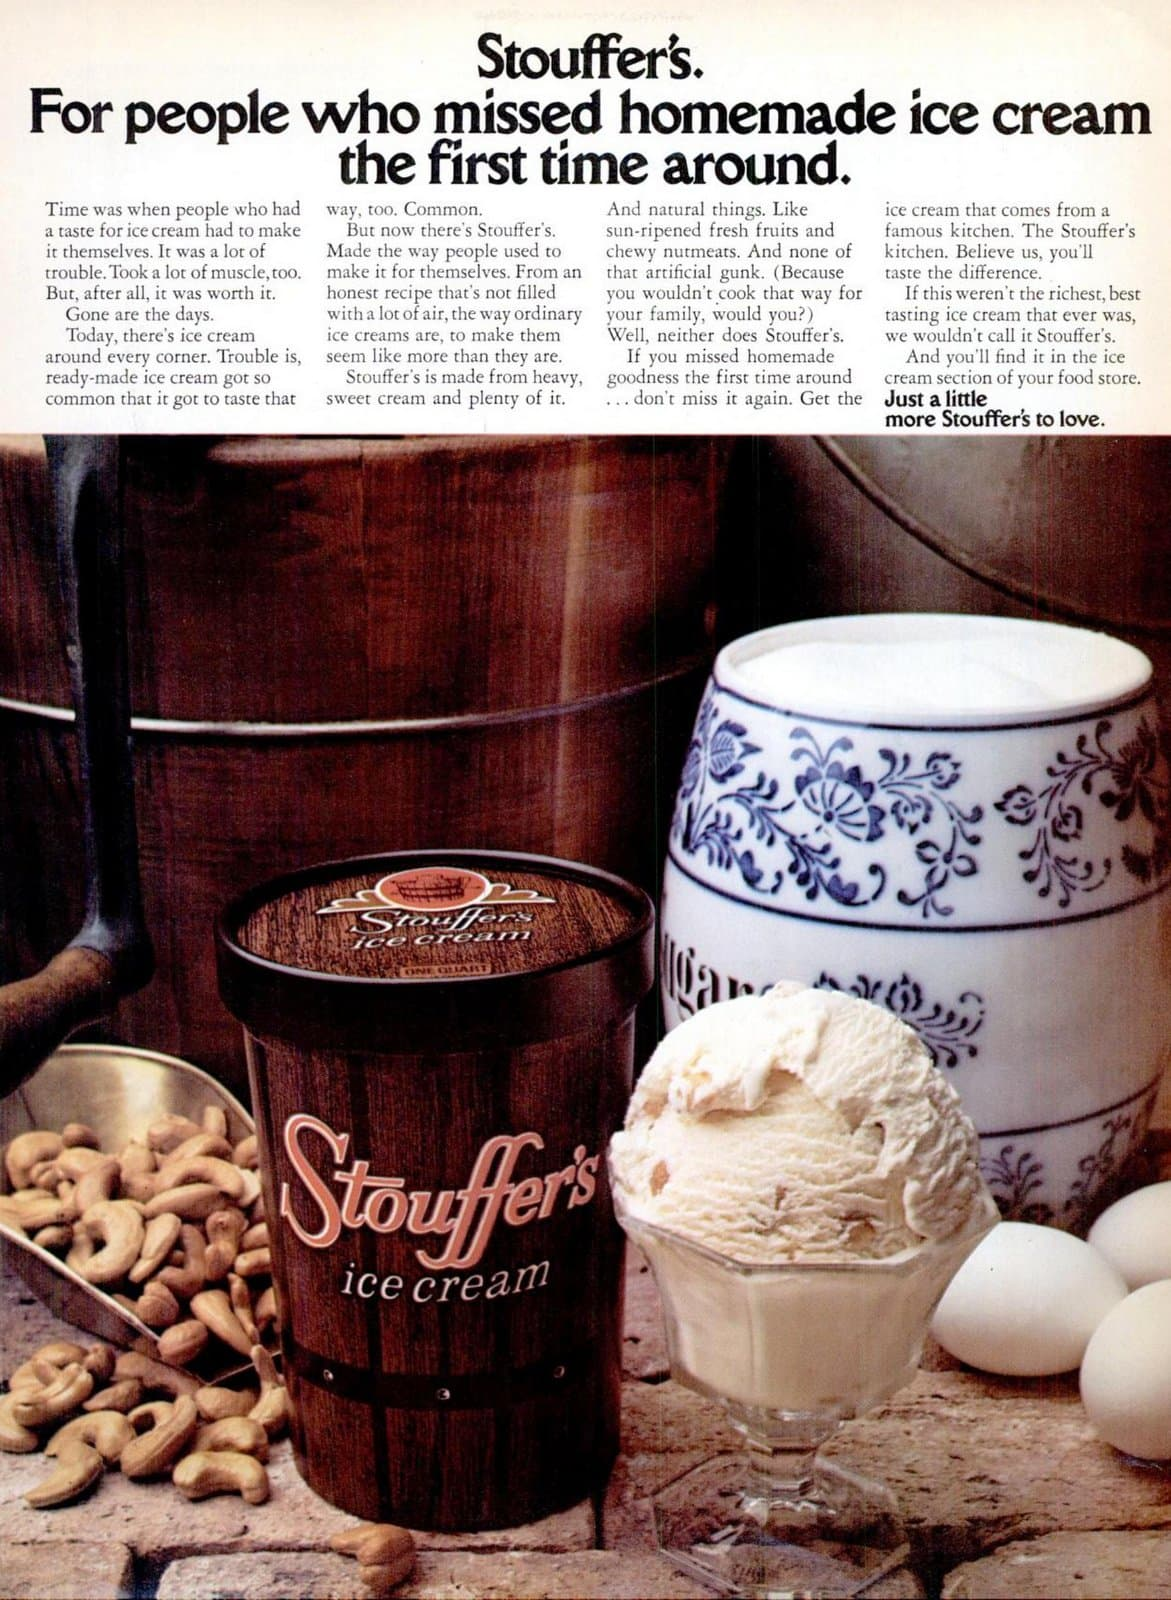 Stouffer's ice cream flavors from 1974 (1)